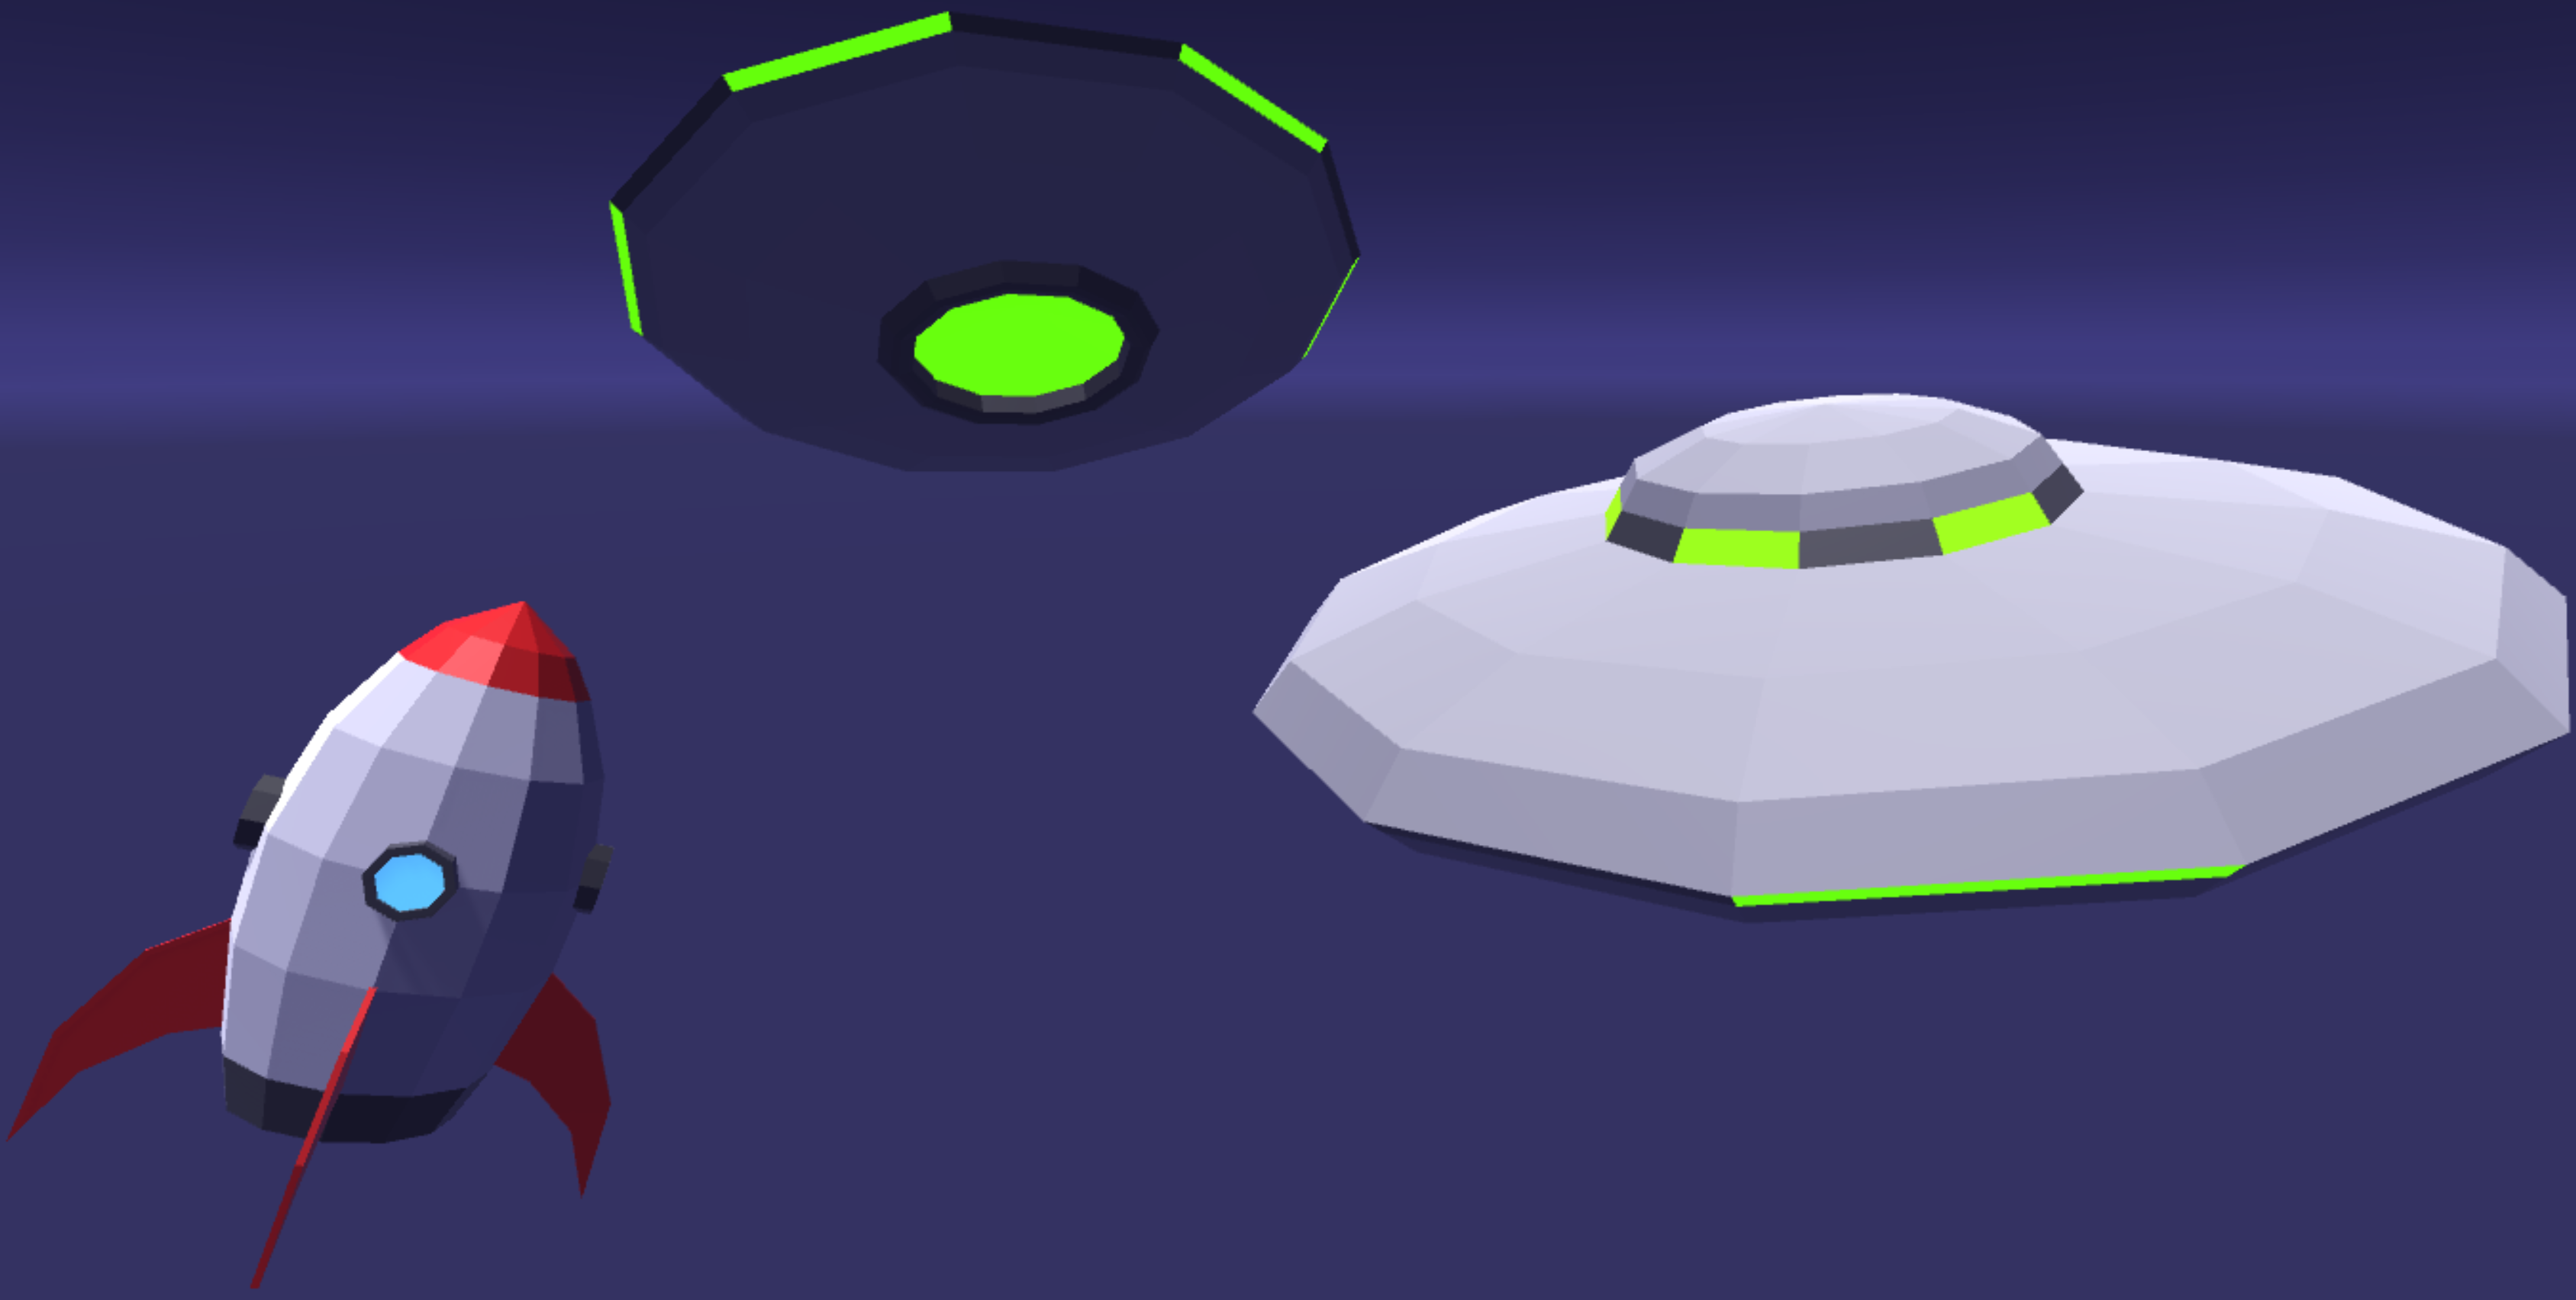 low poly spaceship asset pack 001 by emerald eel entertainment